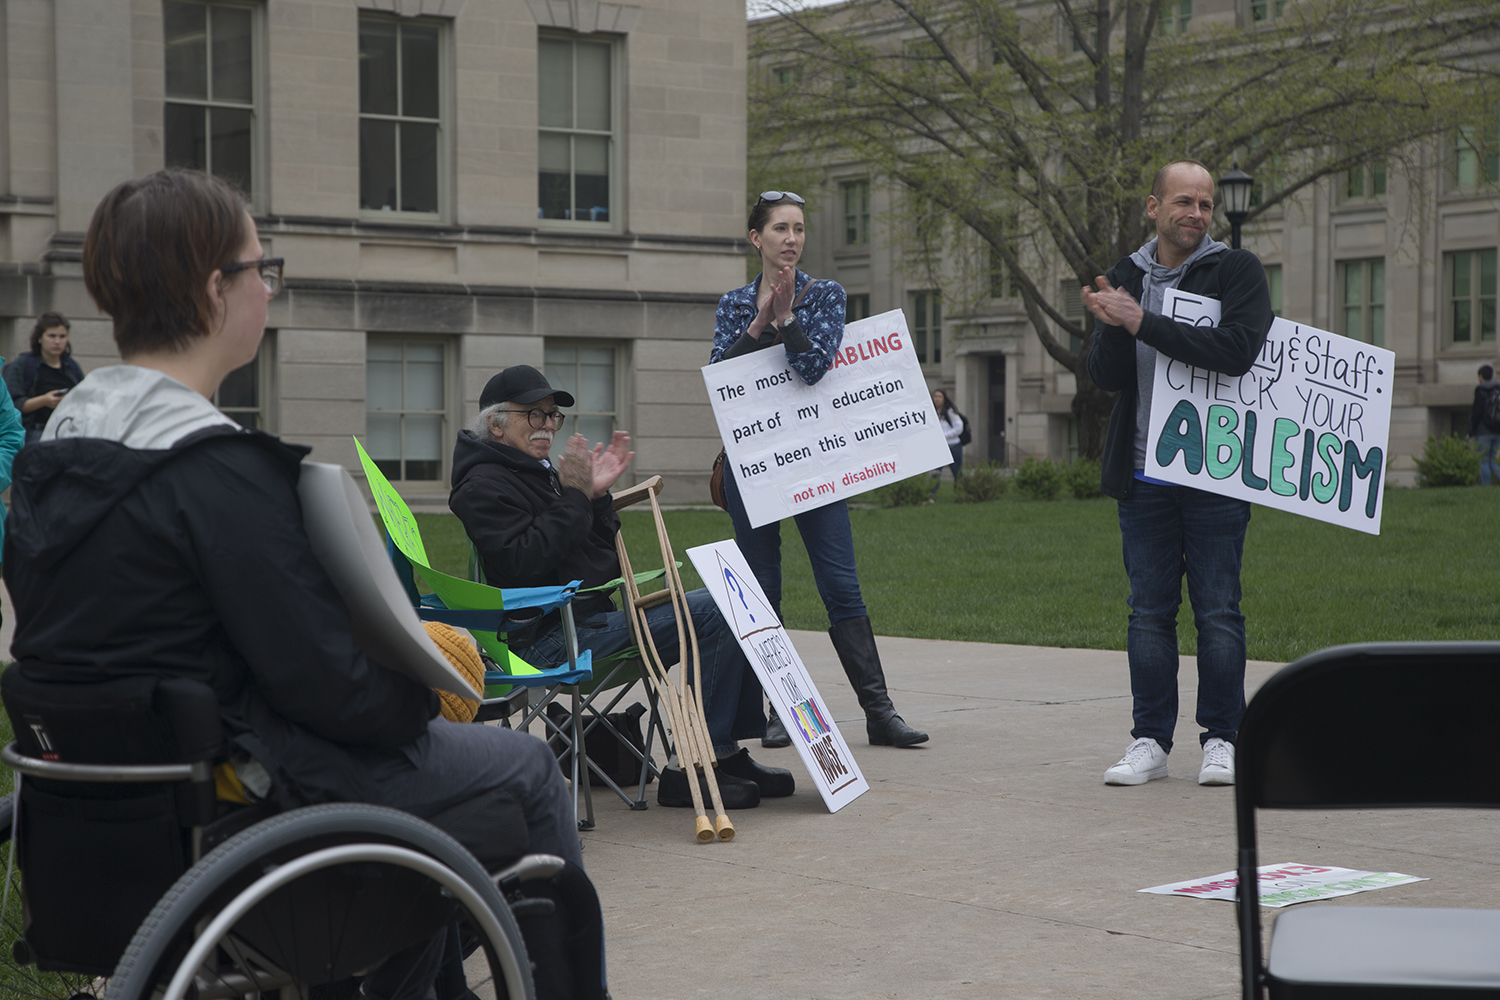 Attendees clap after one of the volunteering speakers on the Pentacrest on Wednesday, May 1, 2019. UI Students for Disability Advocacy & Awareness organized this rally to speak about the injustice that students with disabilities face on campus.